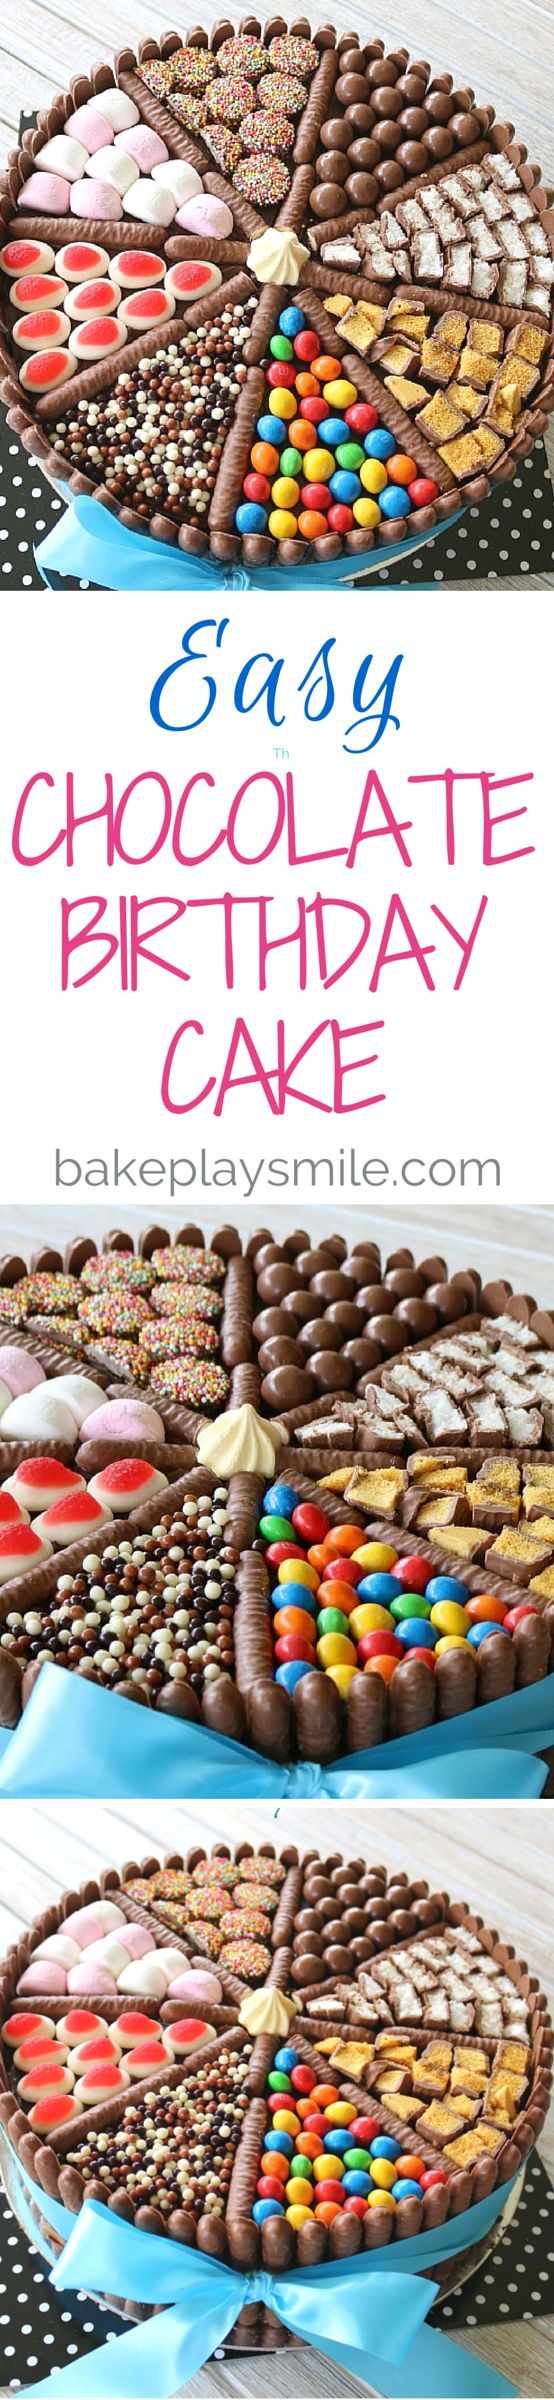 An easy chocolate birthday cake decorated with chocolate biscuits, lollies…